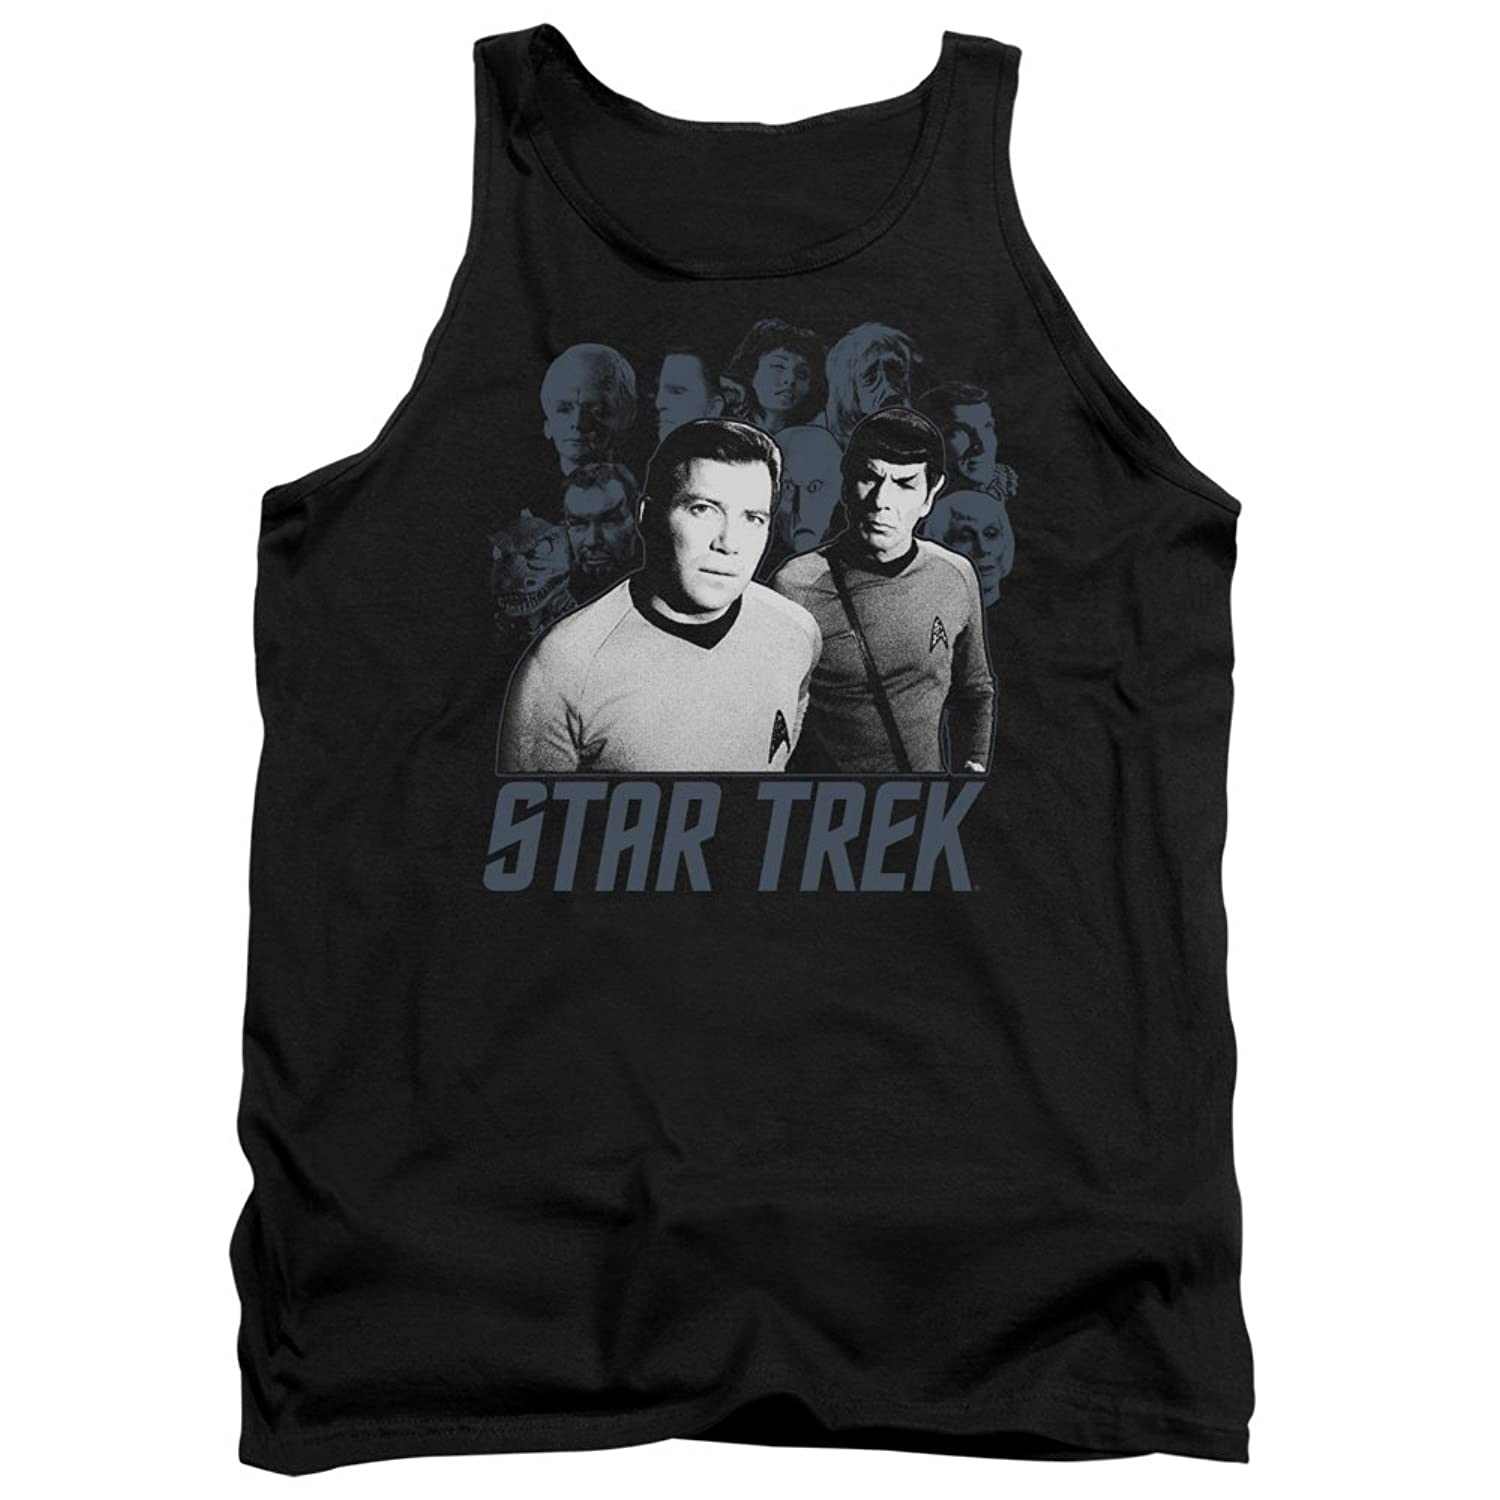 Star Trek Next Generation TV Series Kirk Spock And Company Adult Tank Top Shirt